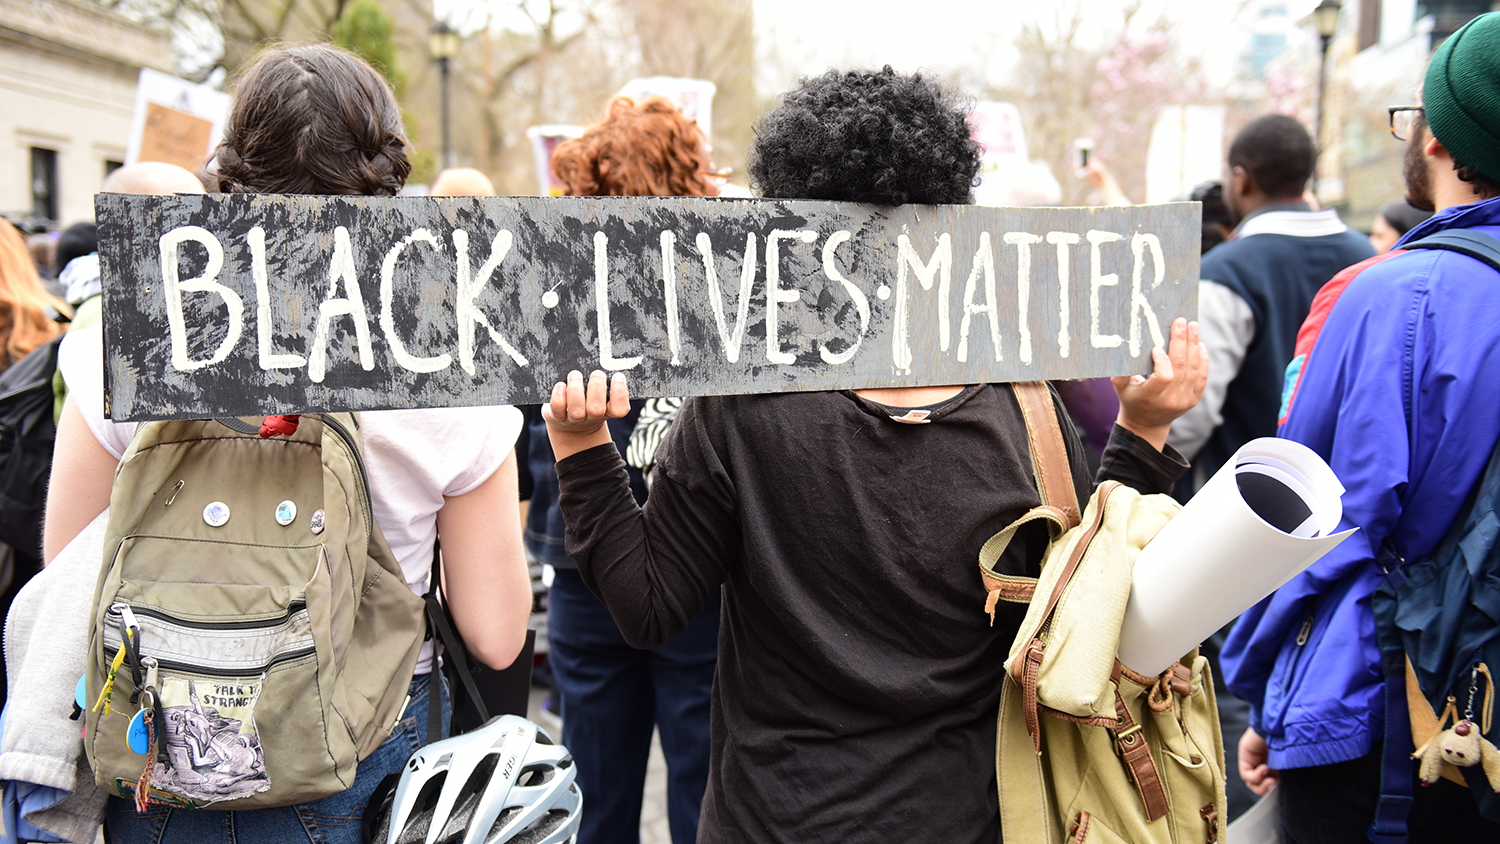 students with a Black Lives Matter sign